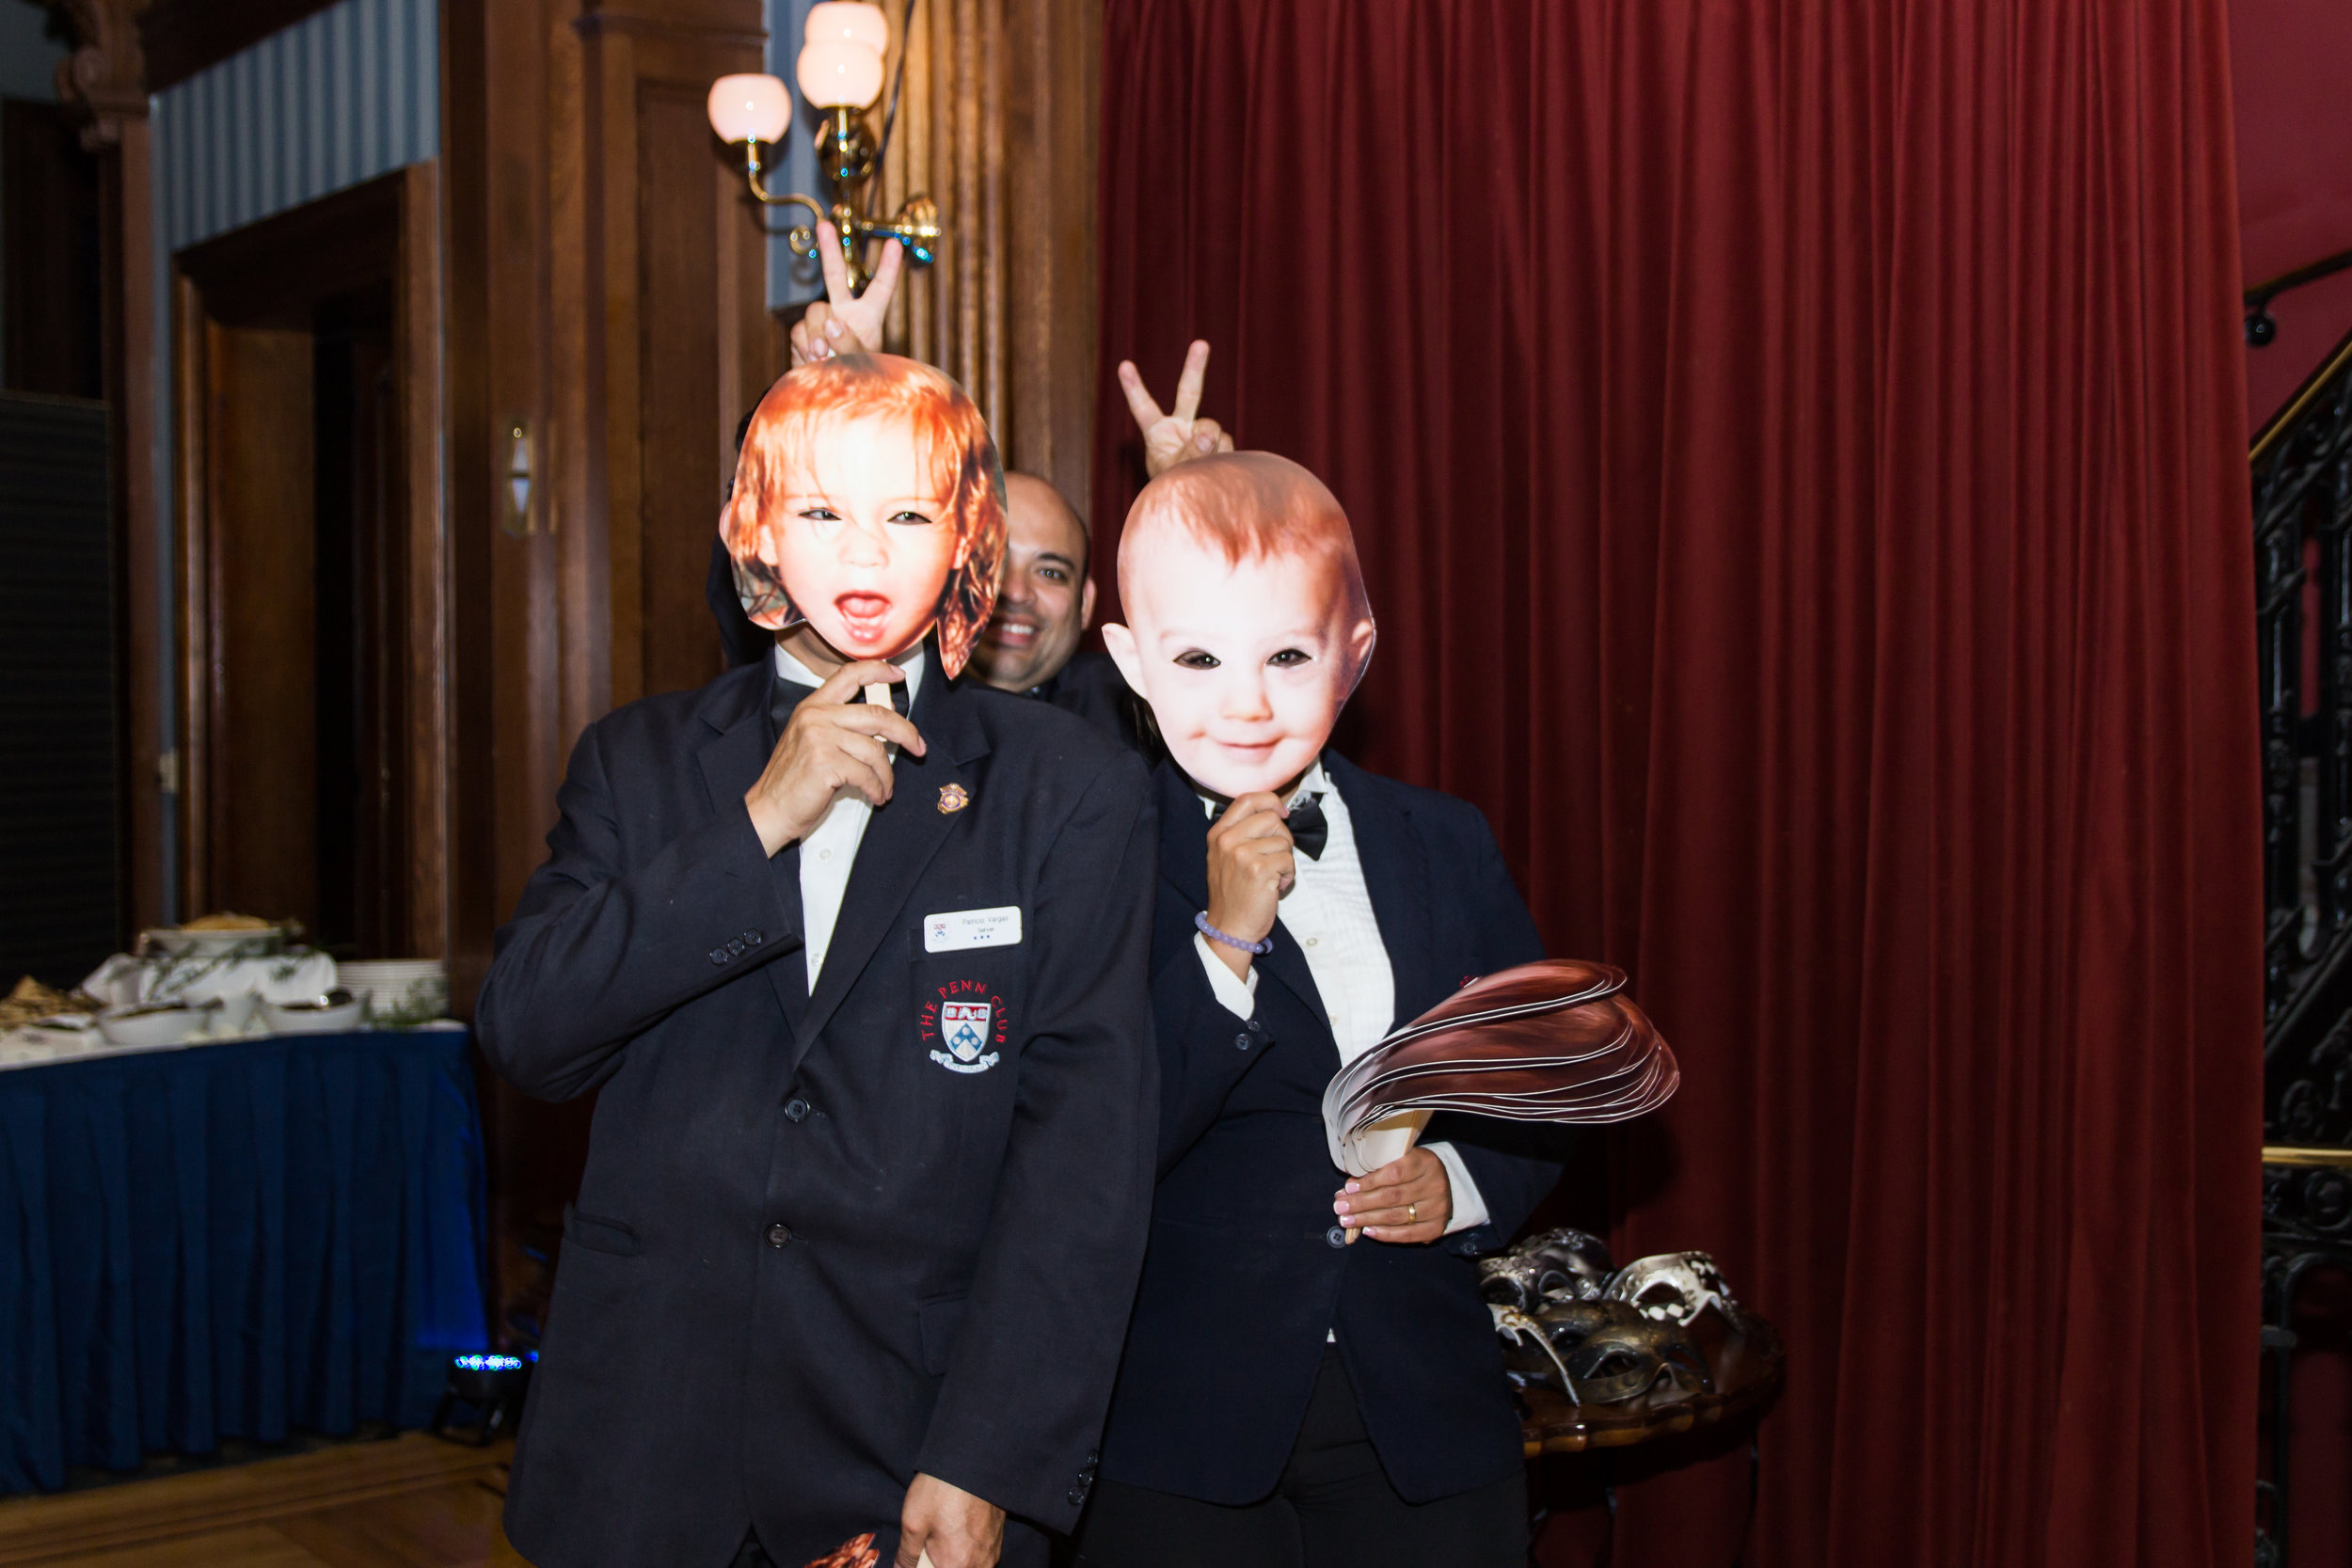 Funny baby face mask to honor the hosts and allow guests to take photos